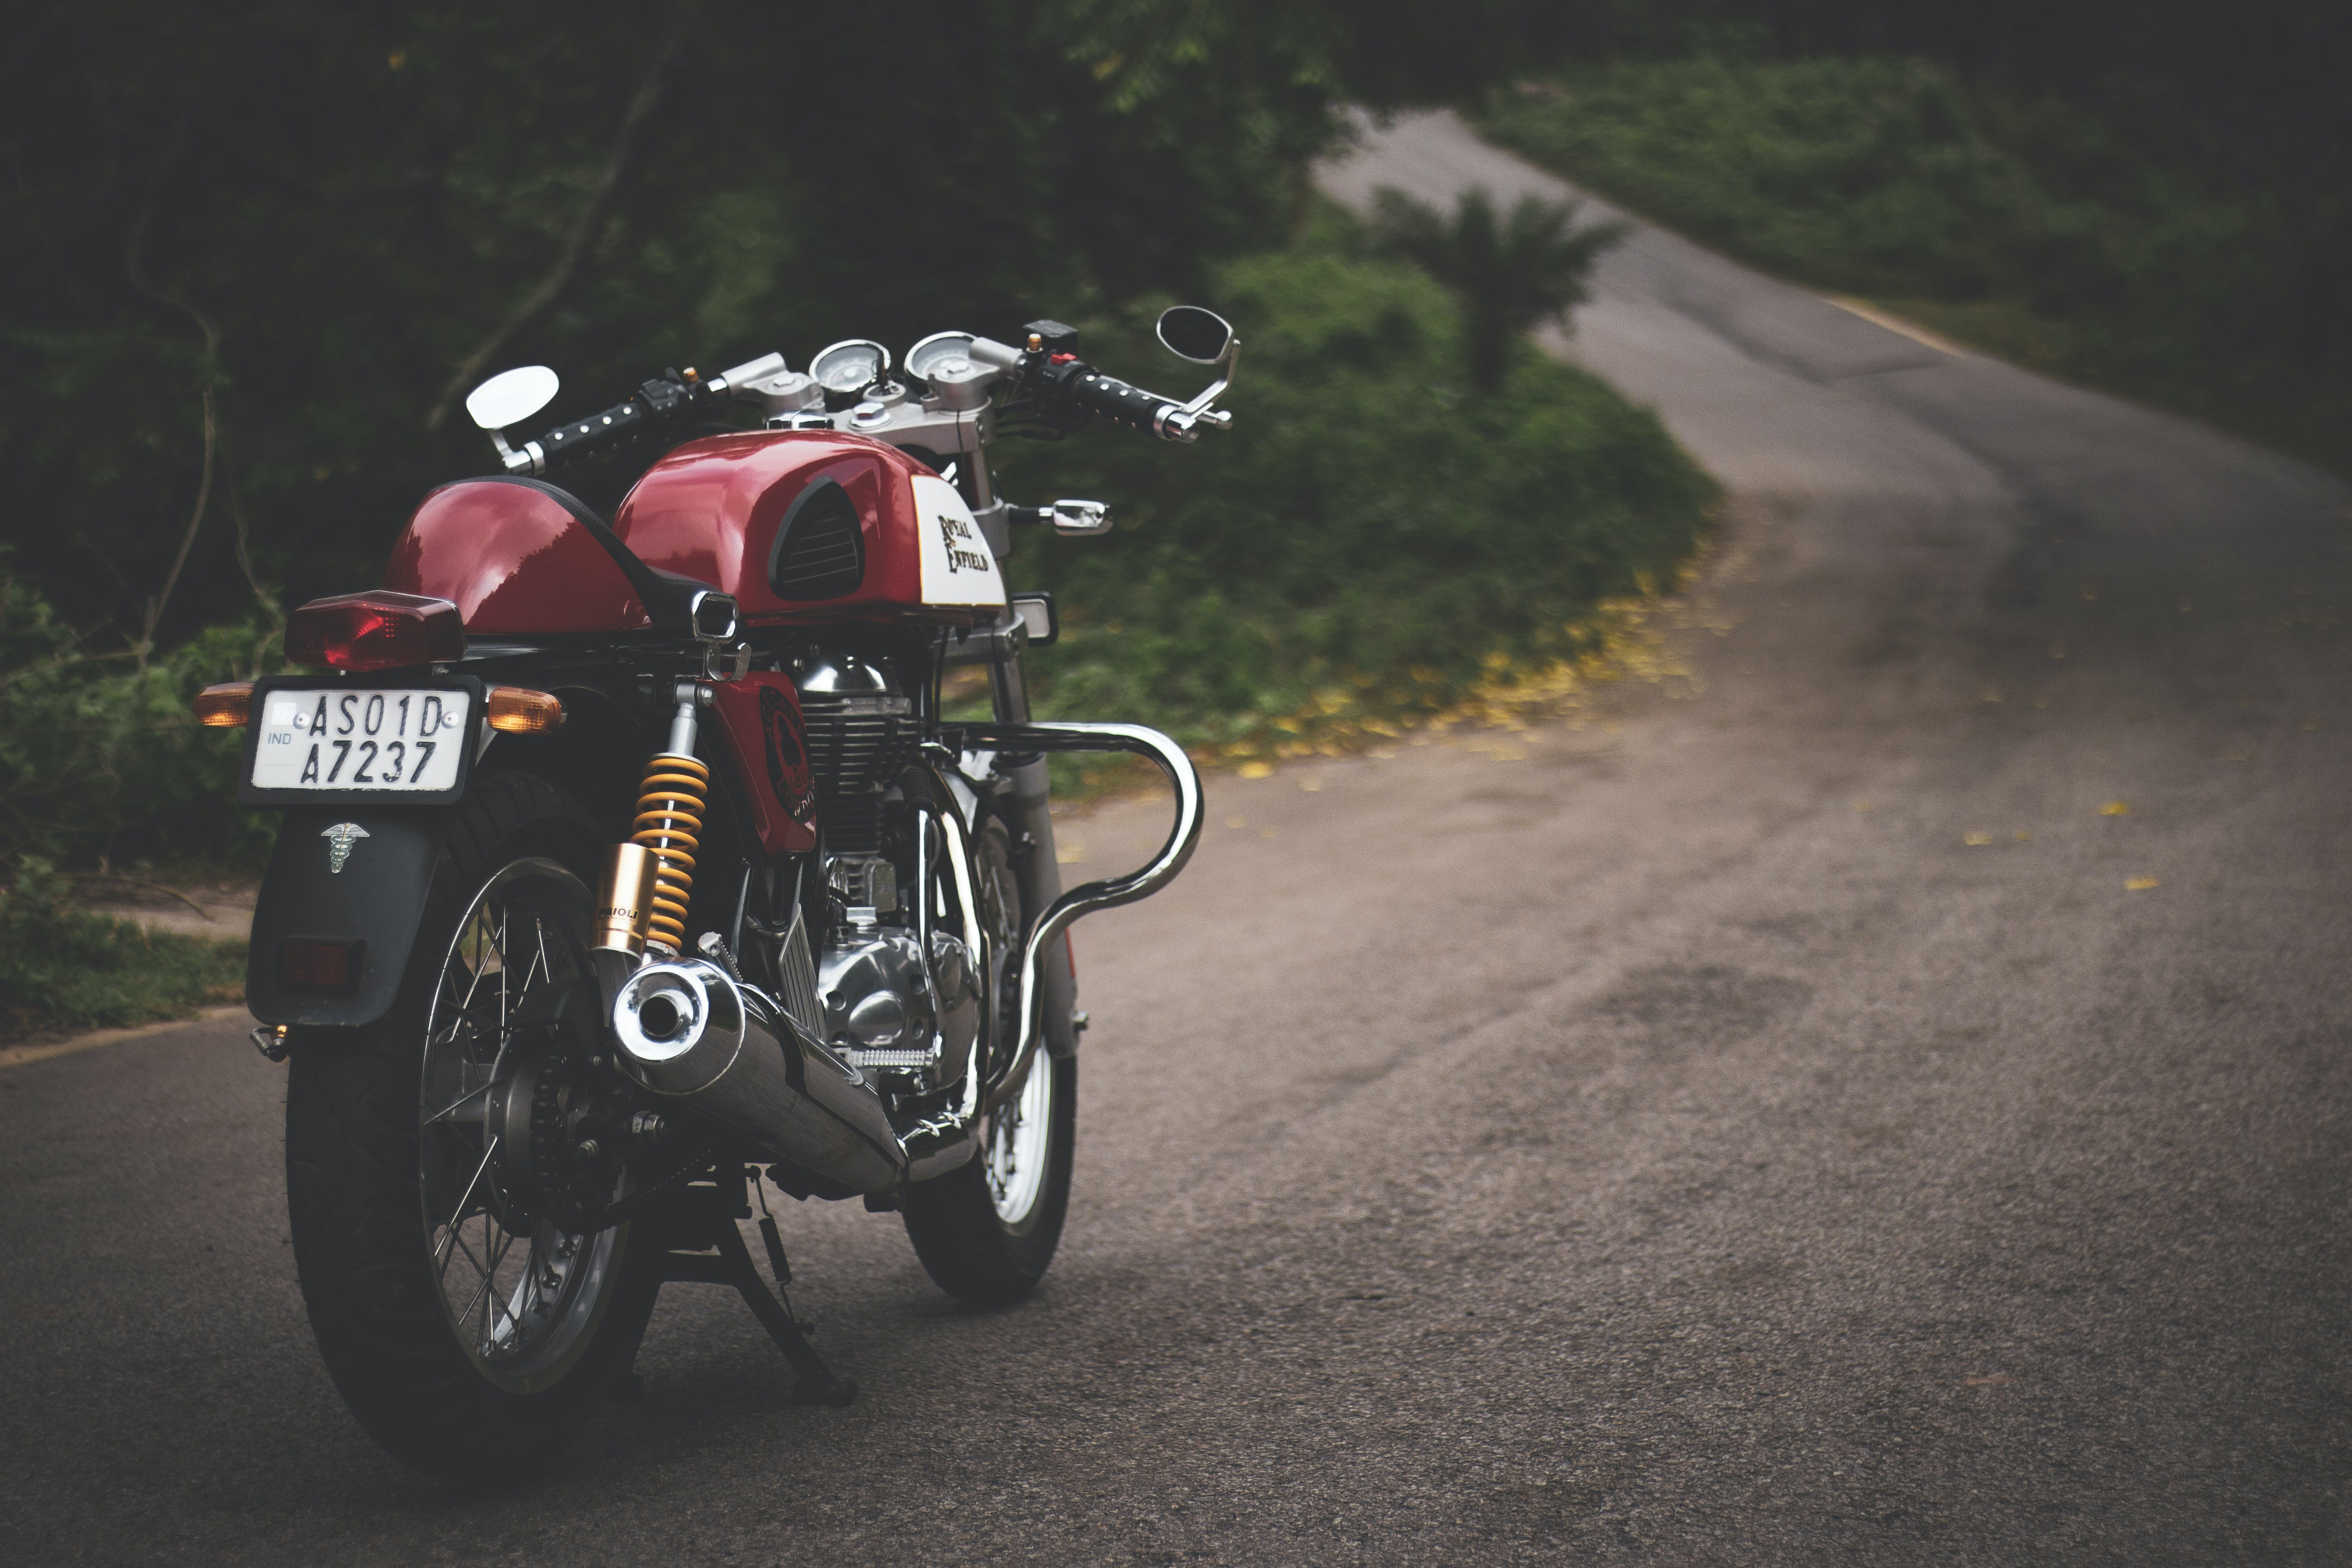 Red Standard Motorcycle Parked on Farm Road